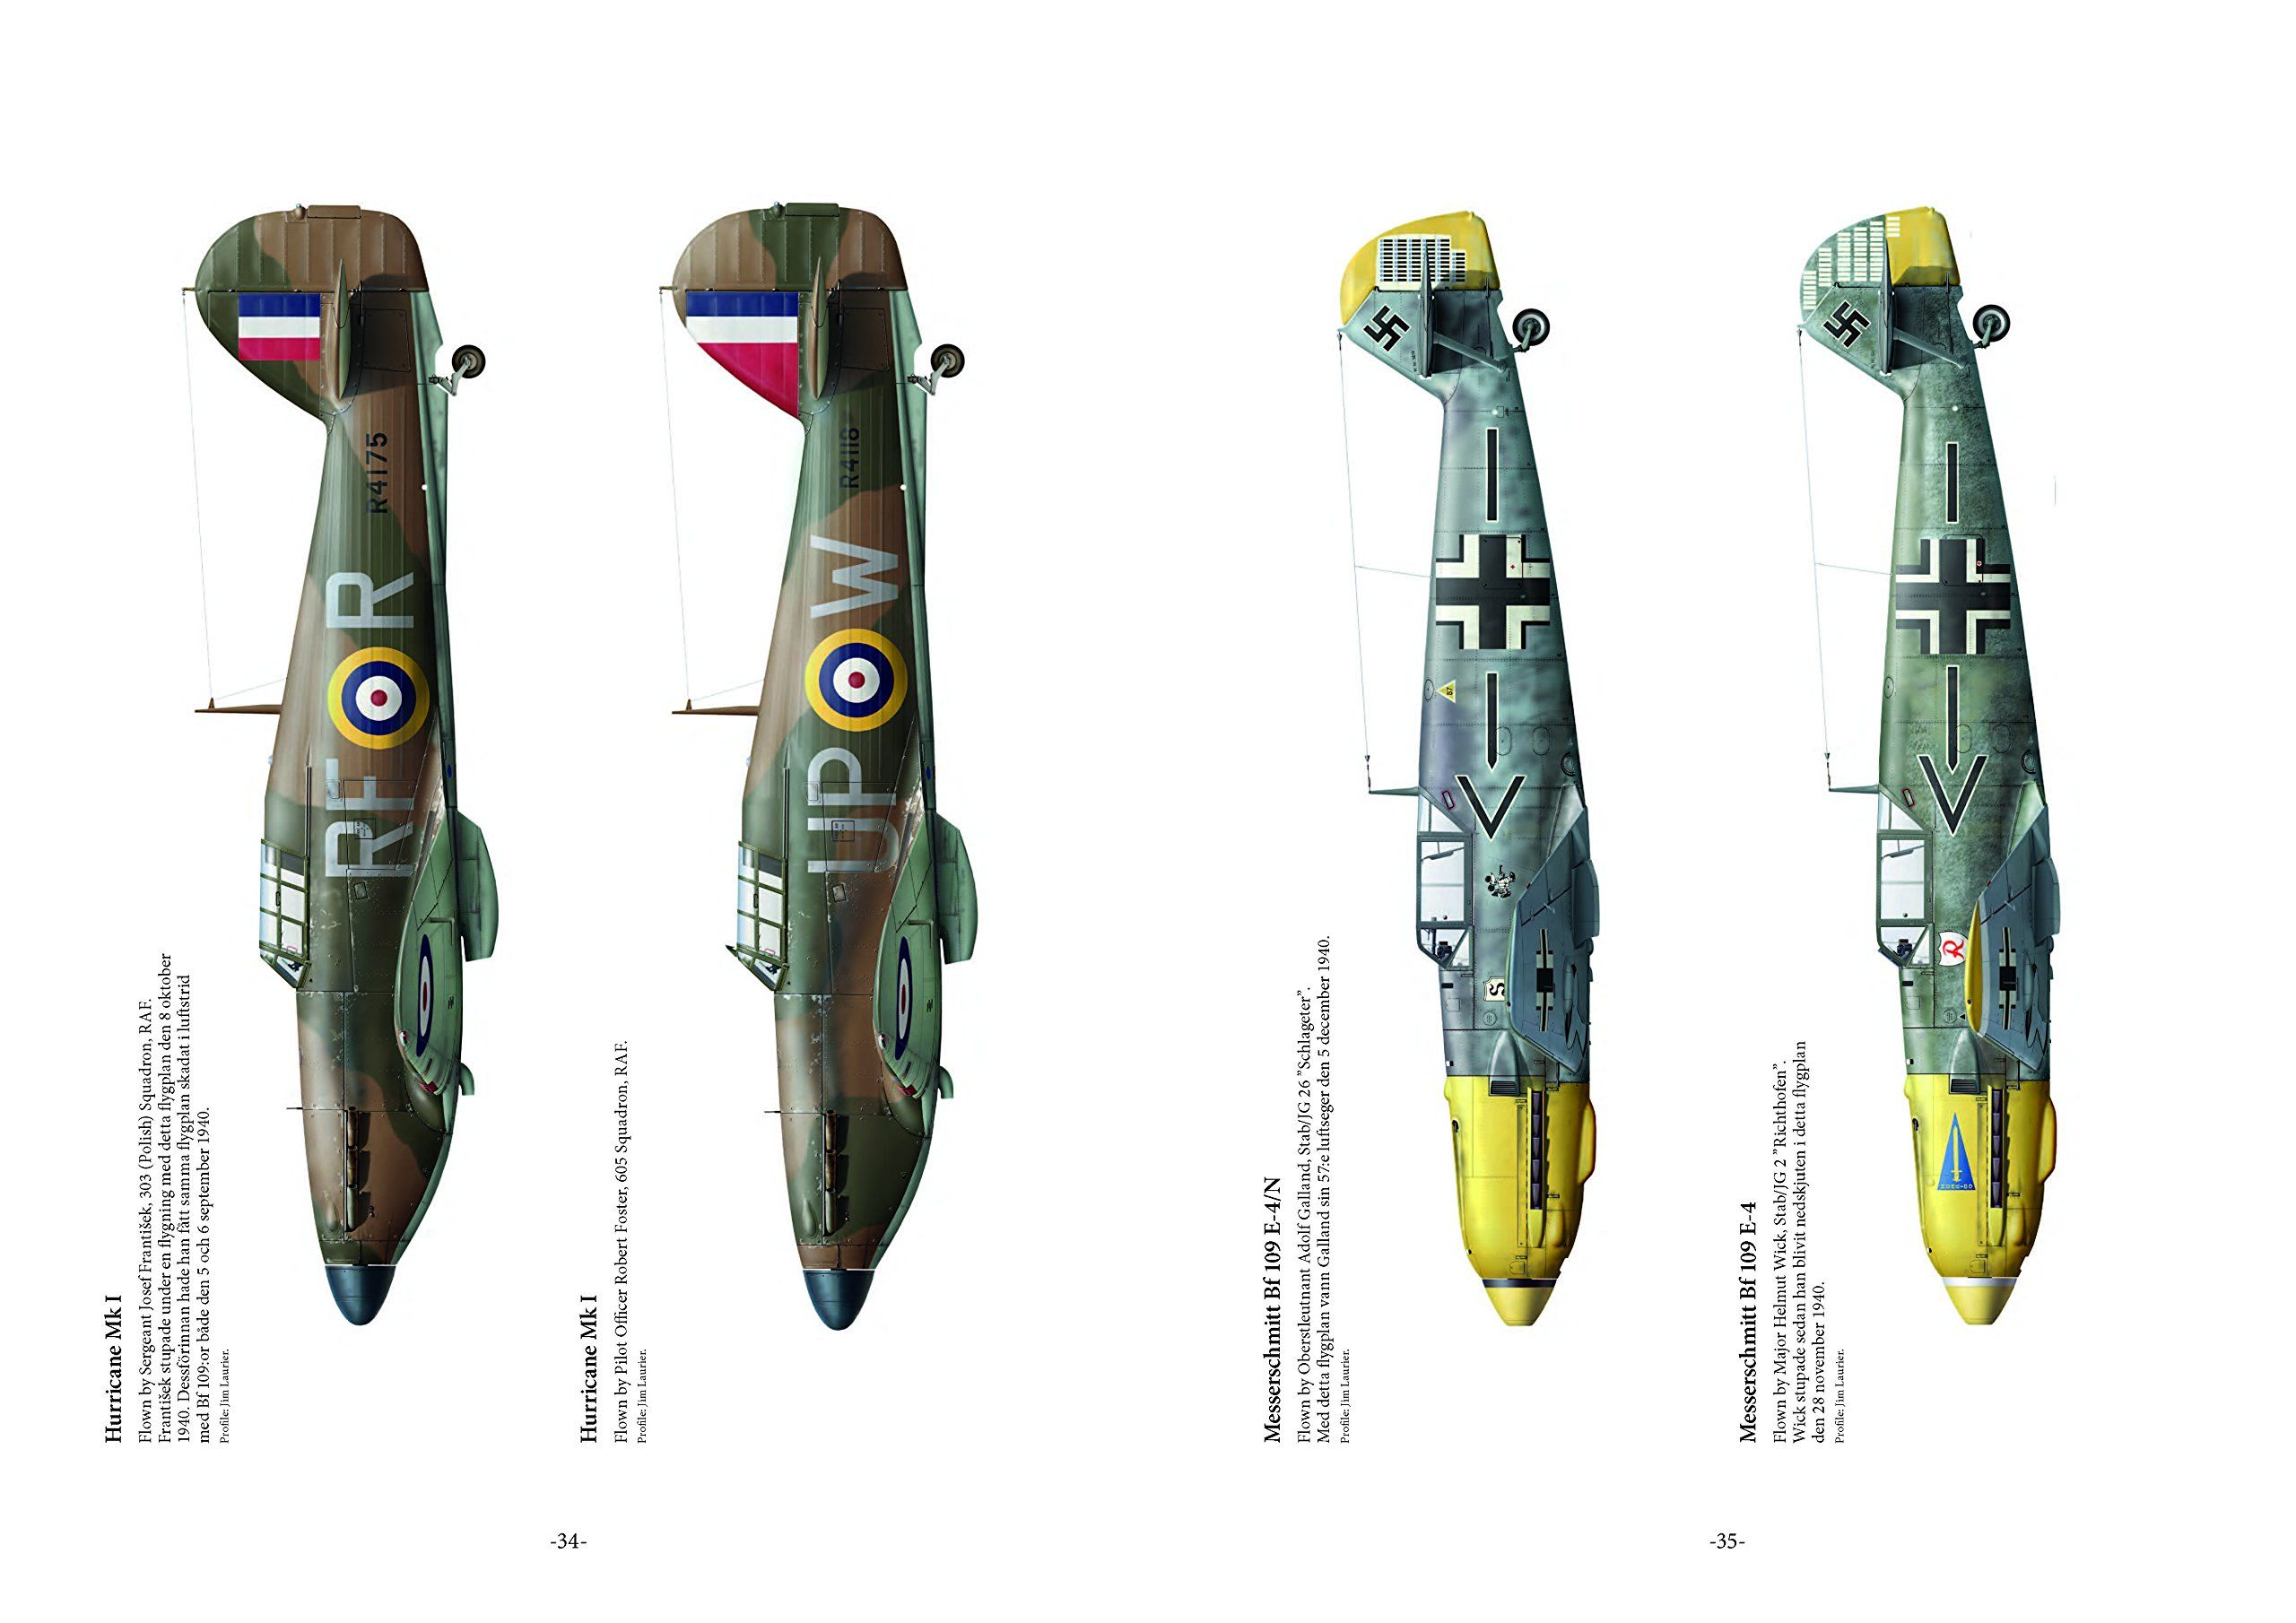 The Battle of Britain: An Epic Conflict Revisited: Amazon.co.uk: Christer Bergström: 9781612003474: Books